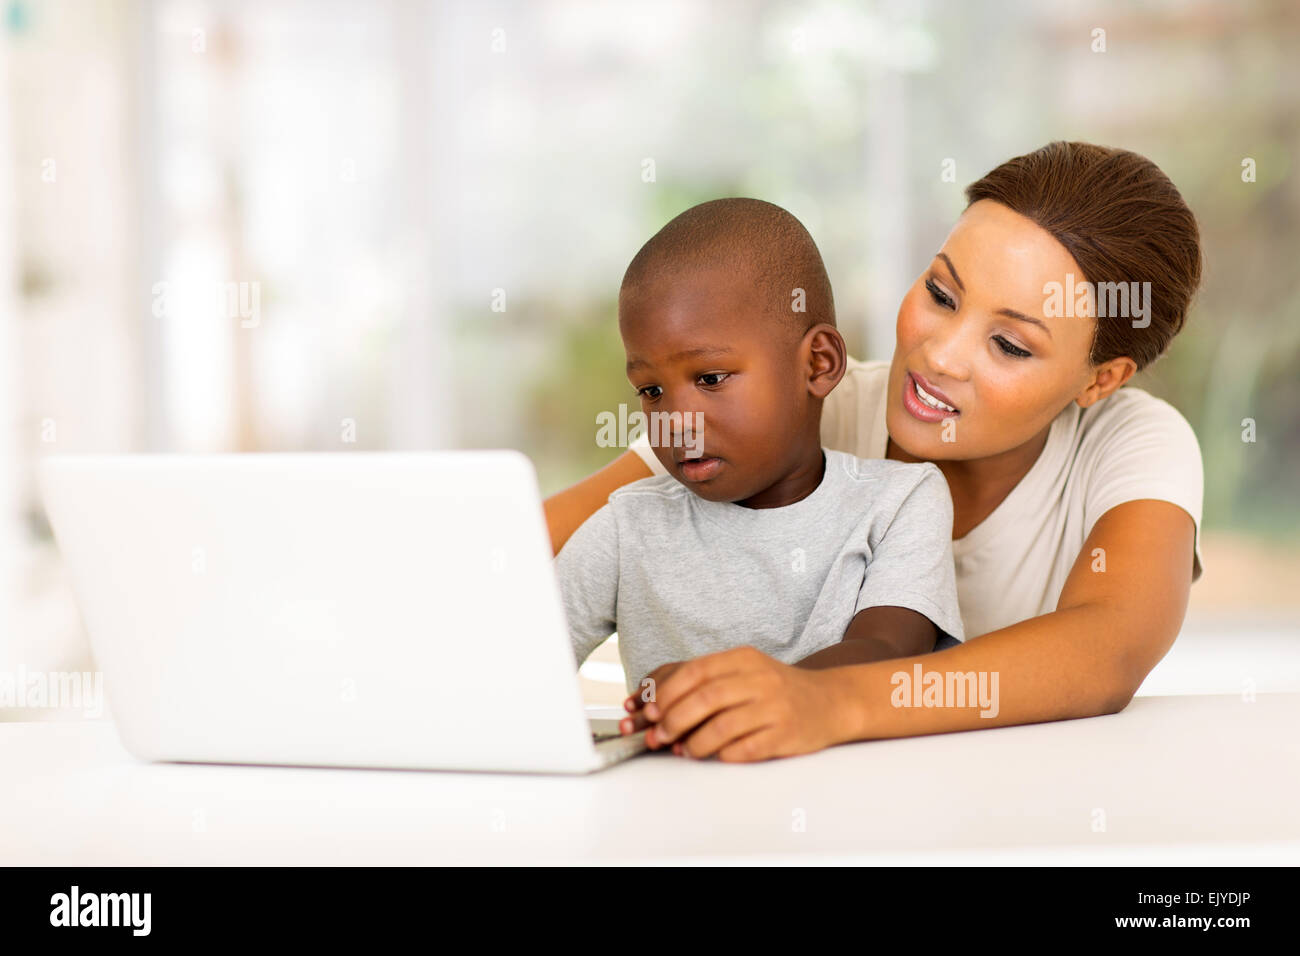 adorable little African boy using laptop with his mother at home - Stock Image